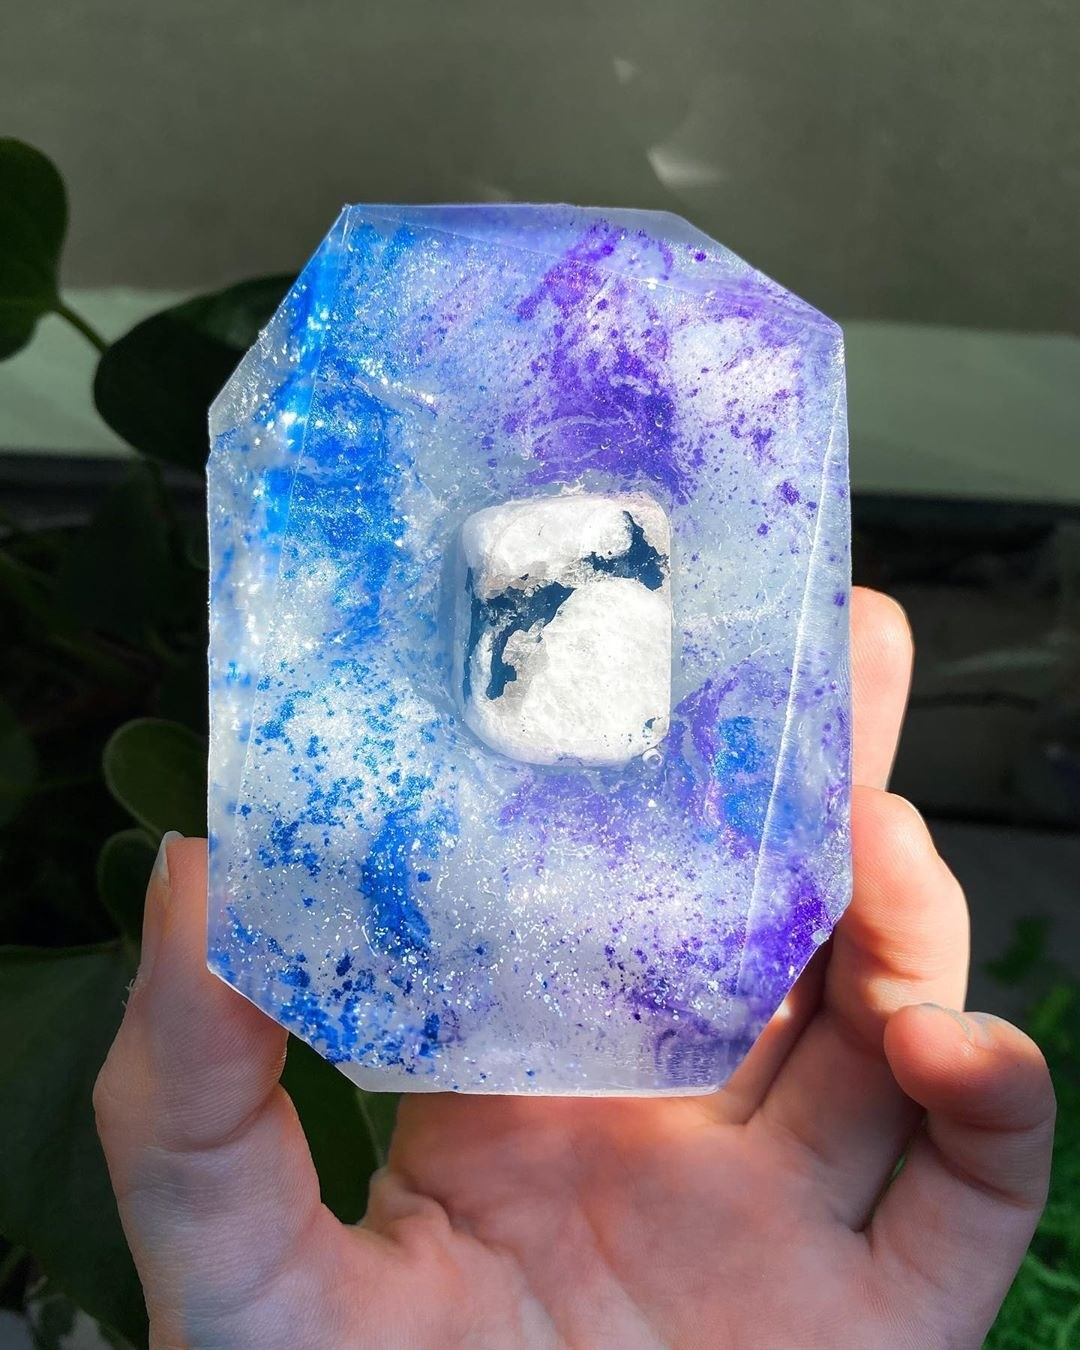 a clear bar of soap with purple and blue sparkles throughout and a crystal stone in the mdidle